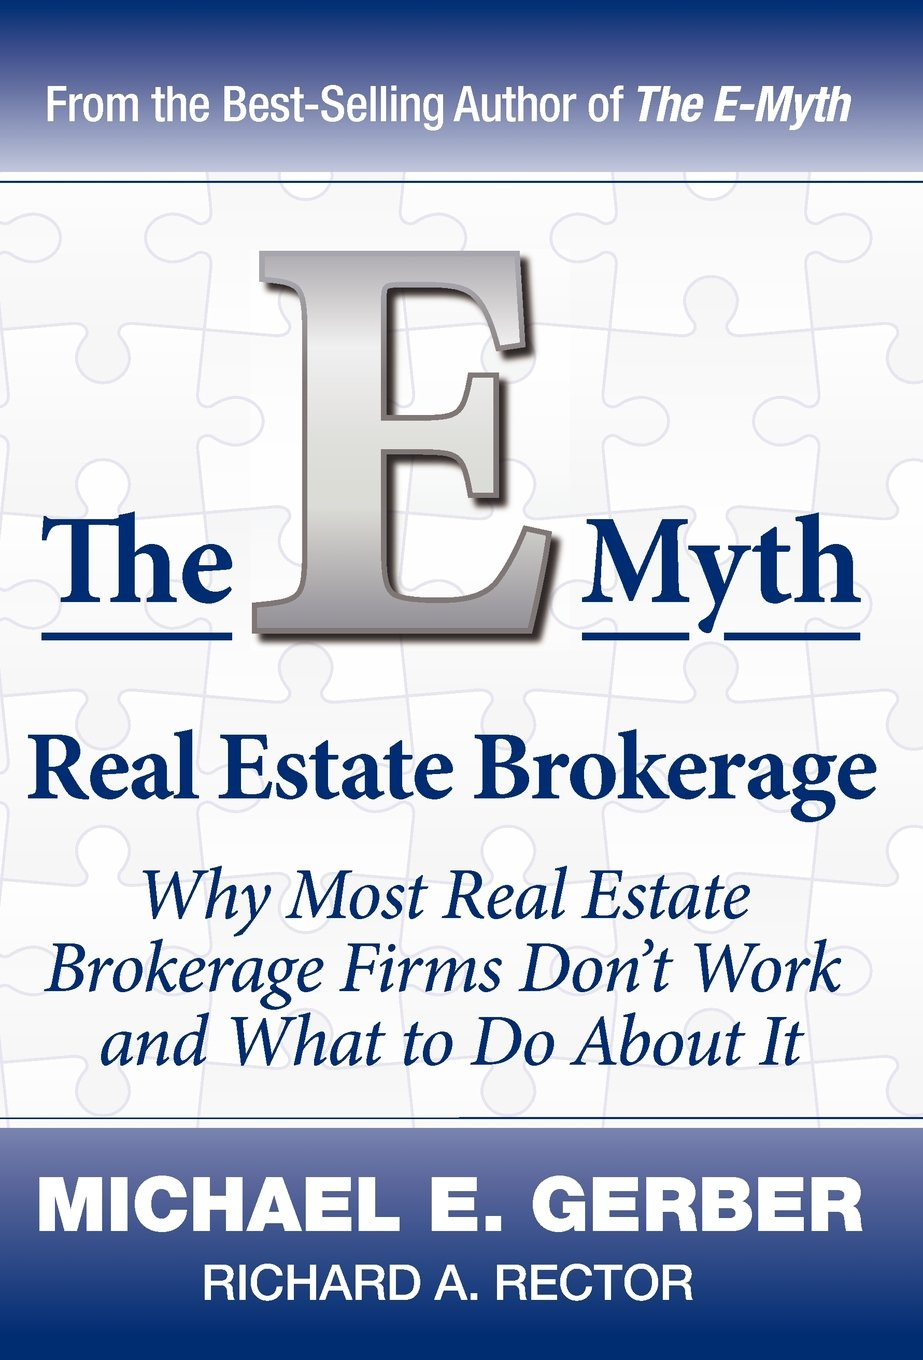 Download The E-Myth Real Estate Brokerage: Why Most Real Estate Brokerage Firms Don't Work and What to Do about It PDF